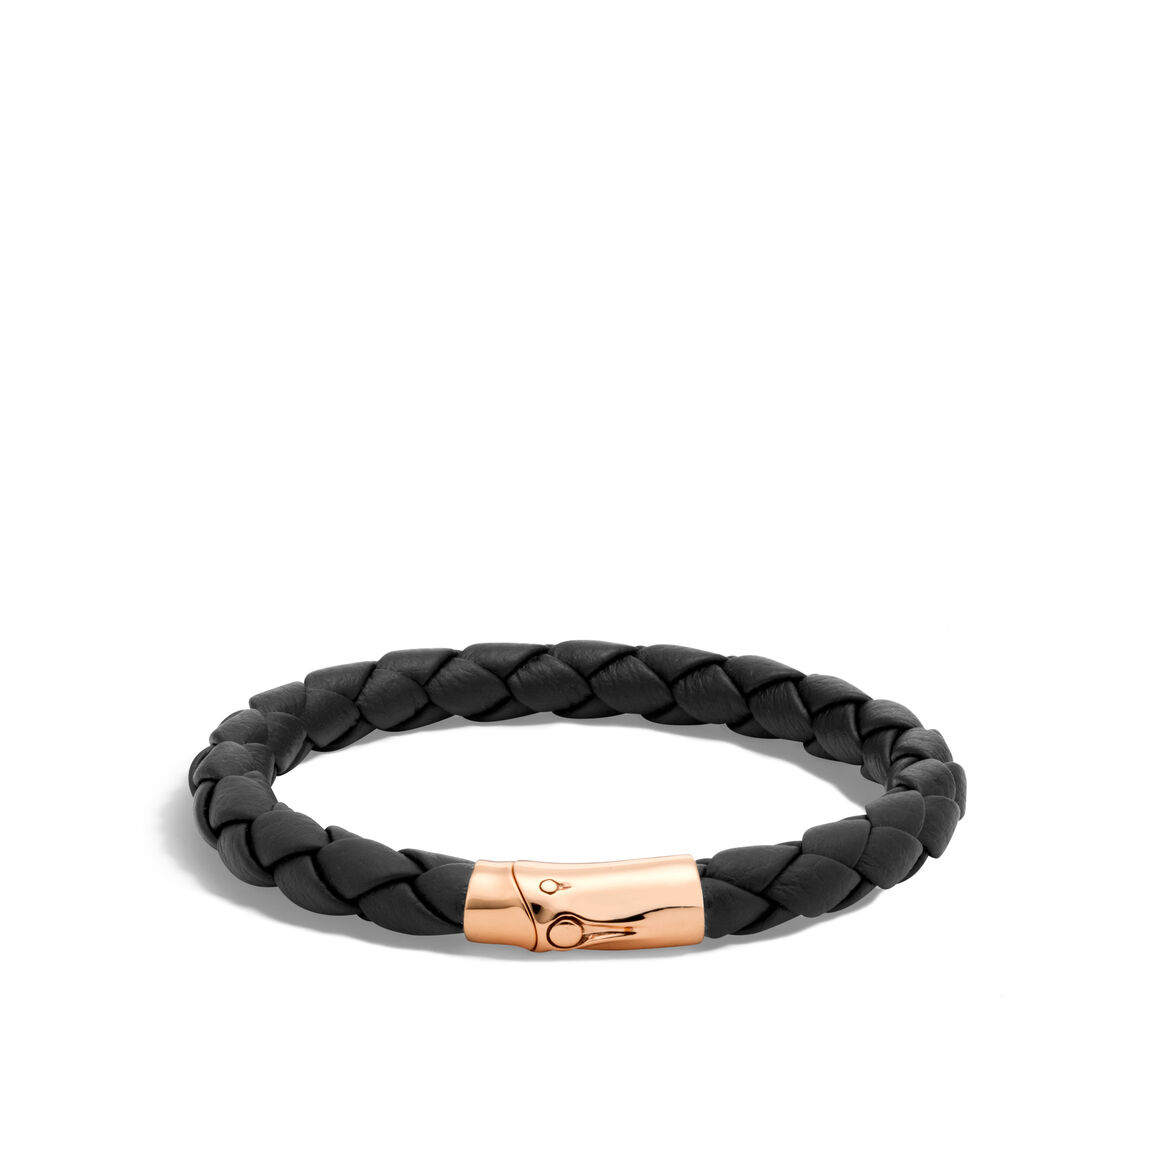 Bamboo 8MM Station Bracelet in Bronze and Leather